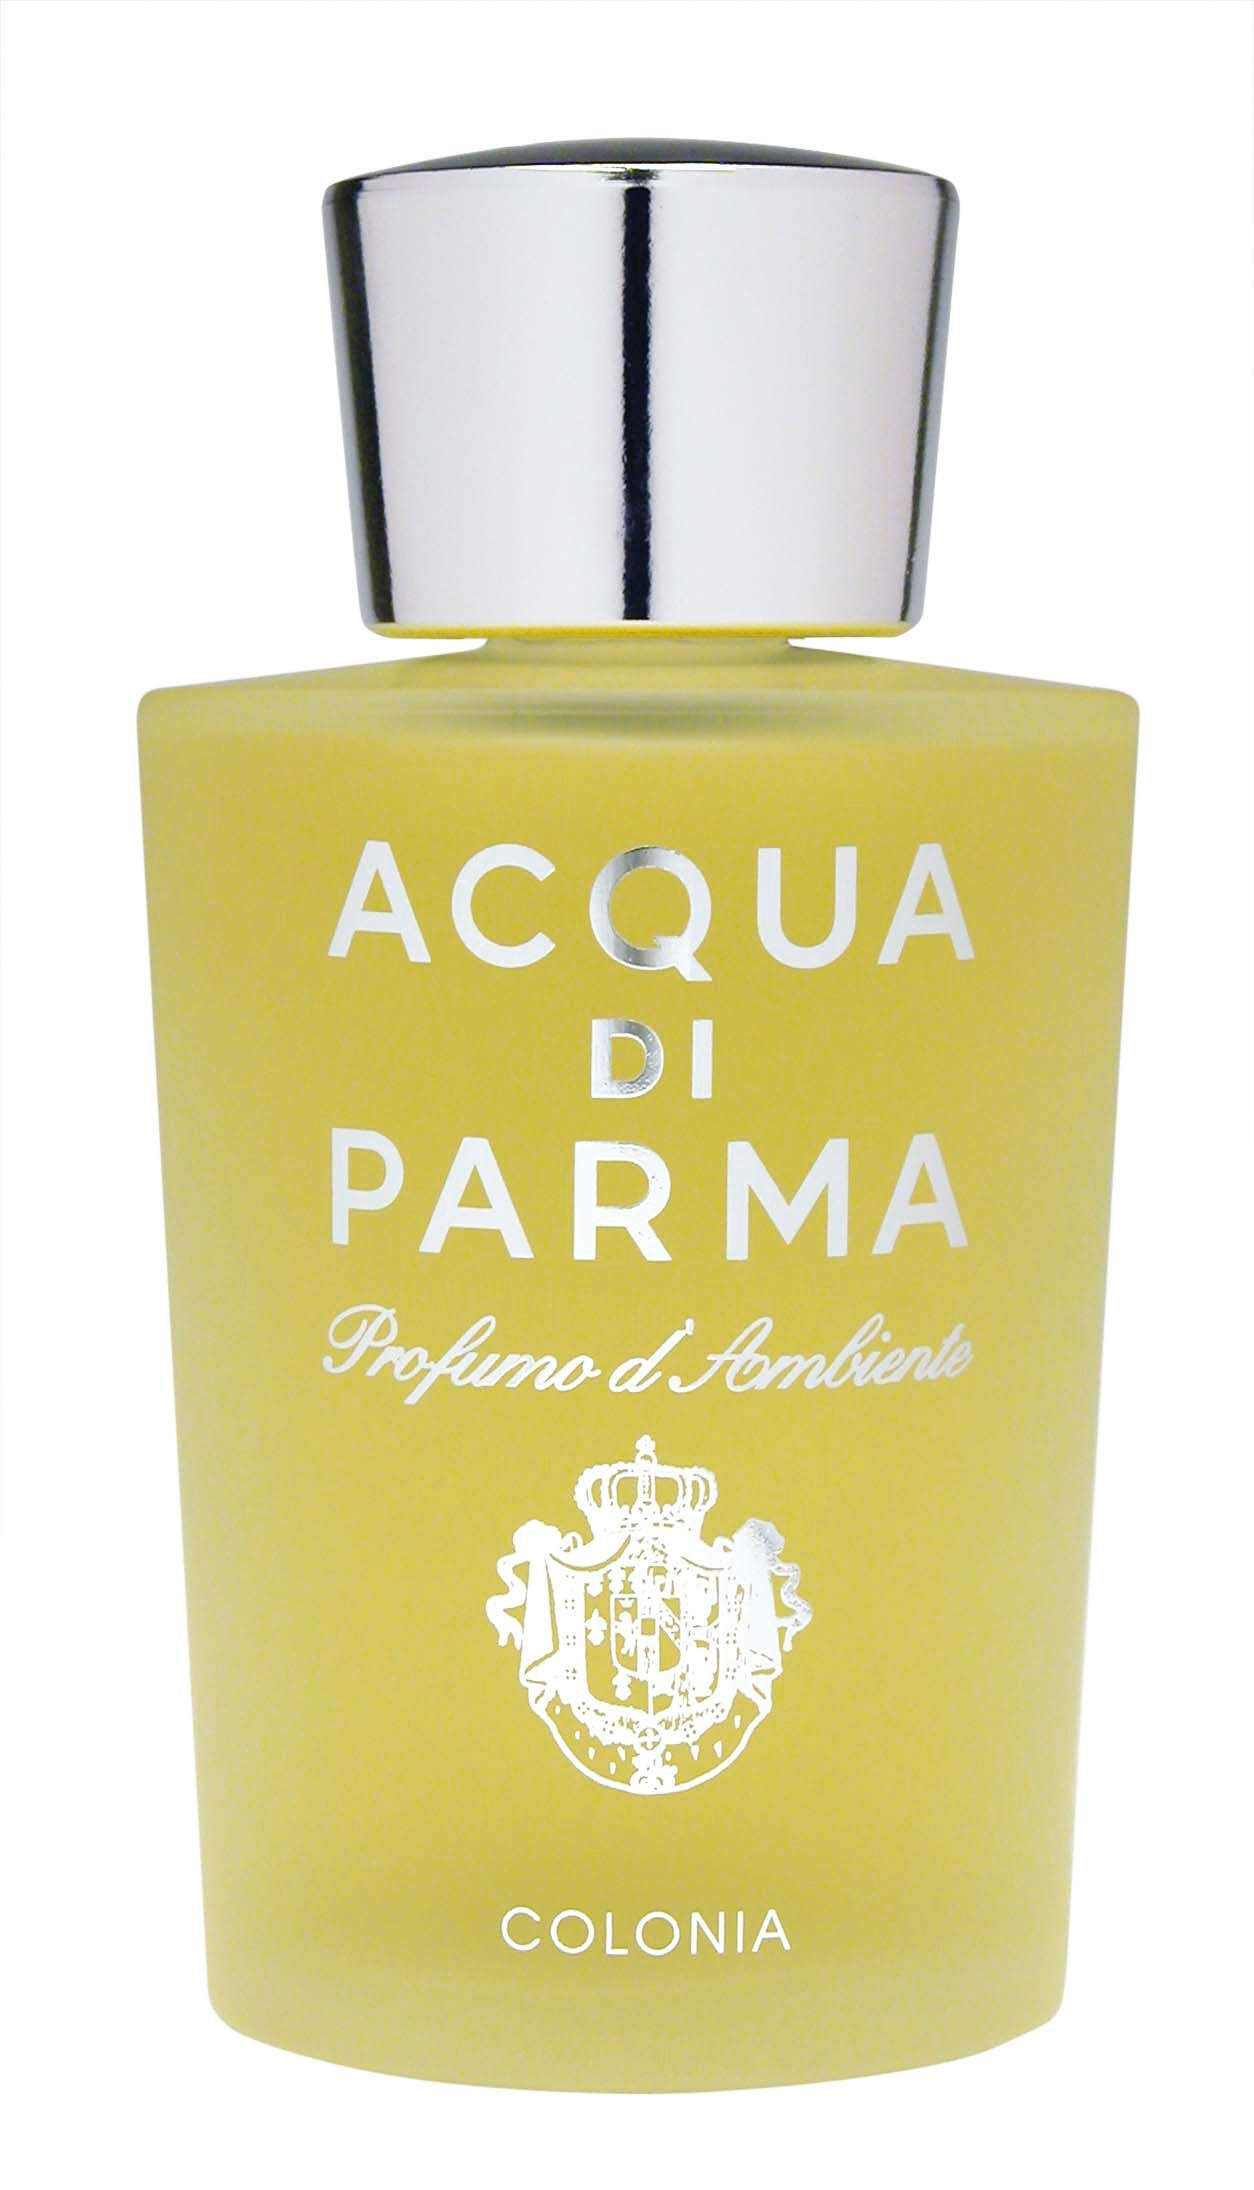 Image of Acqua Di Parma Colonia Accord room fragrance